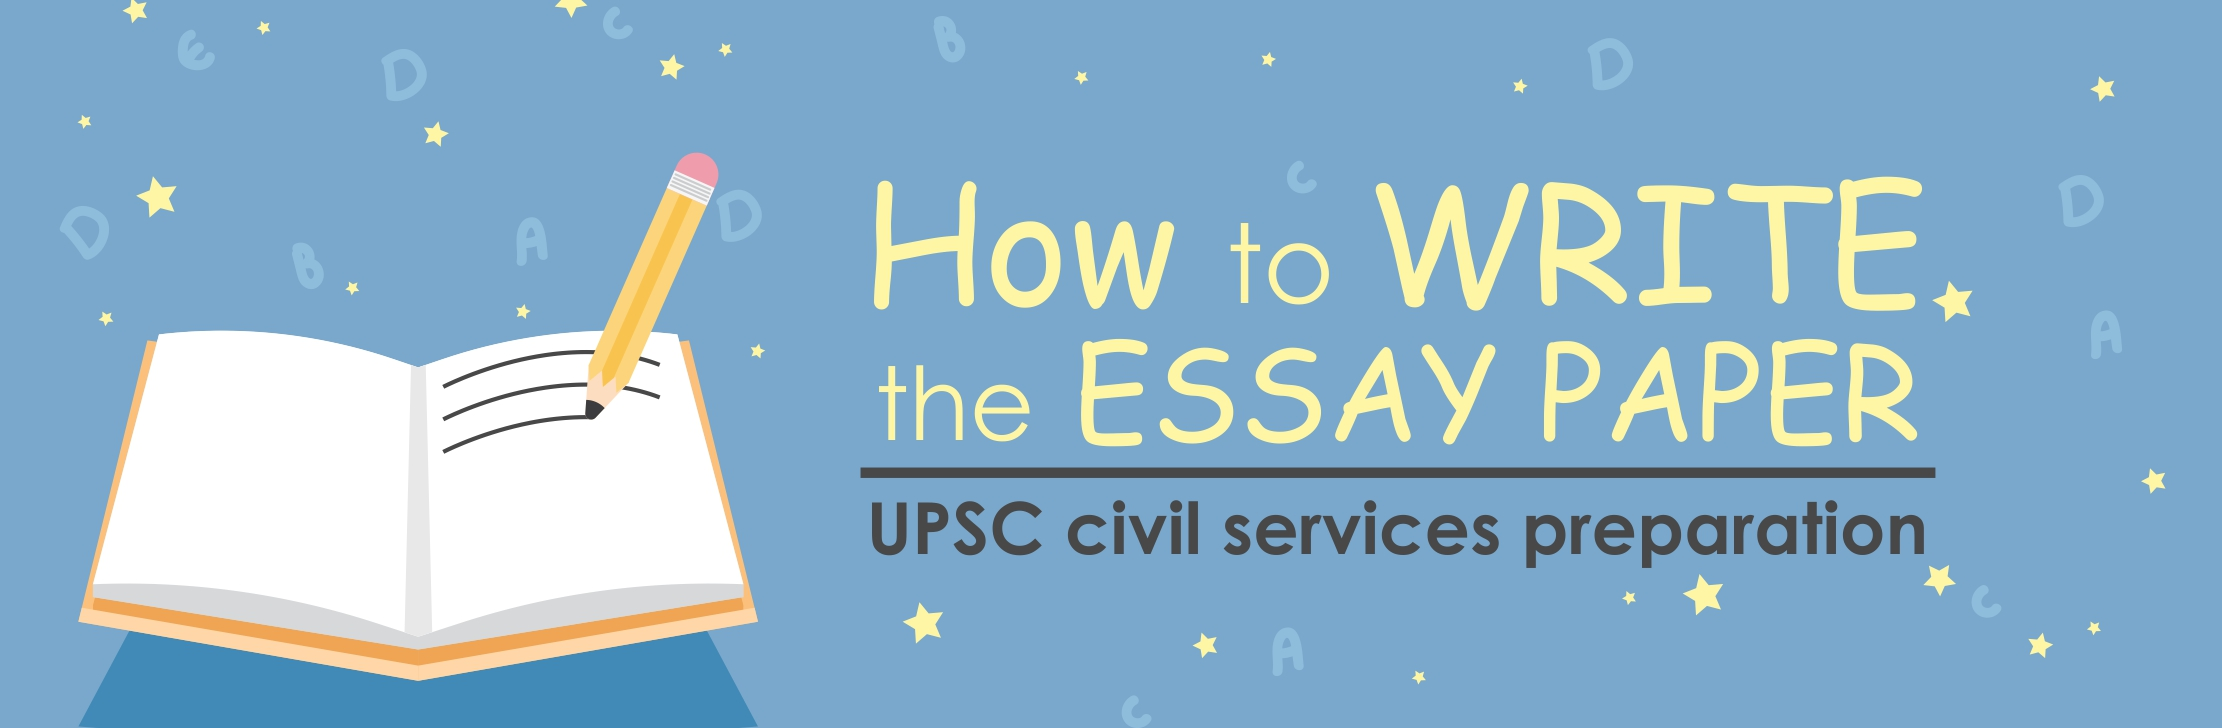 Essay Writing Format In English For Upsc